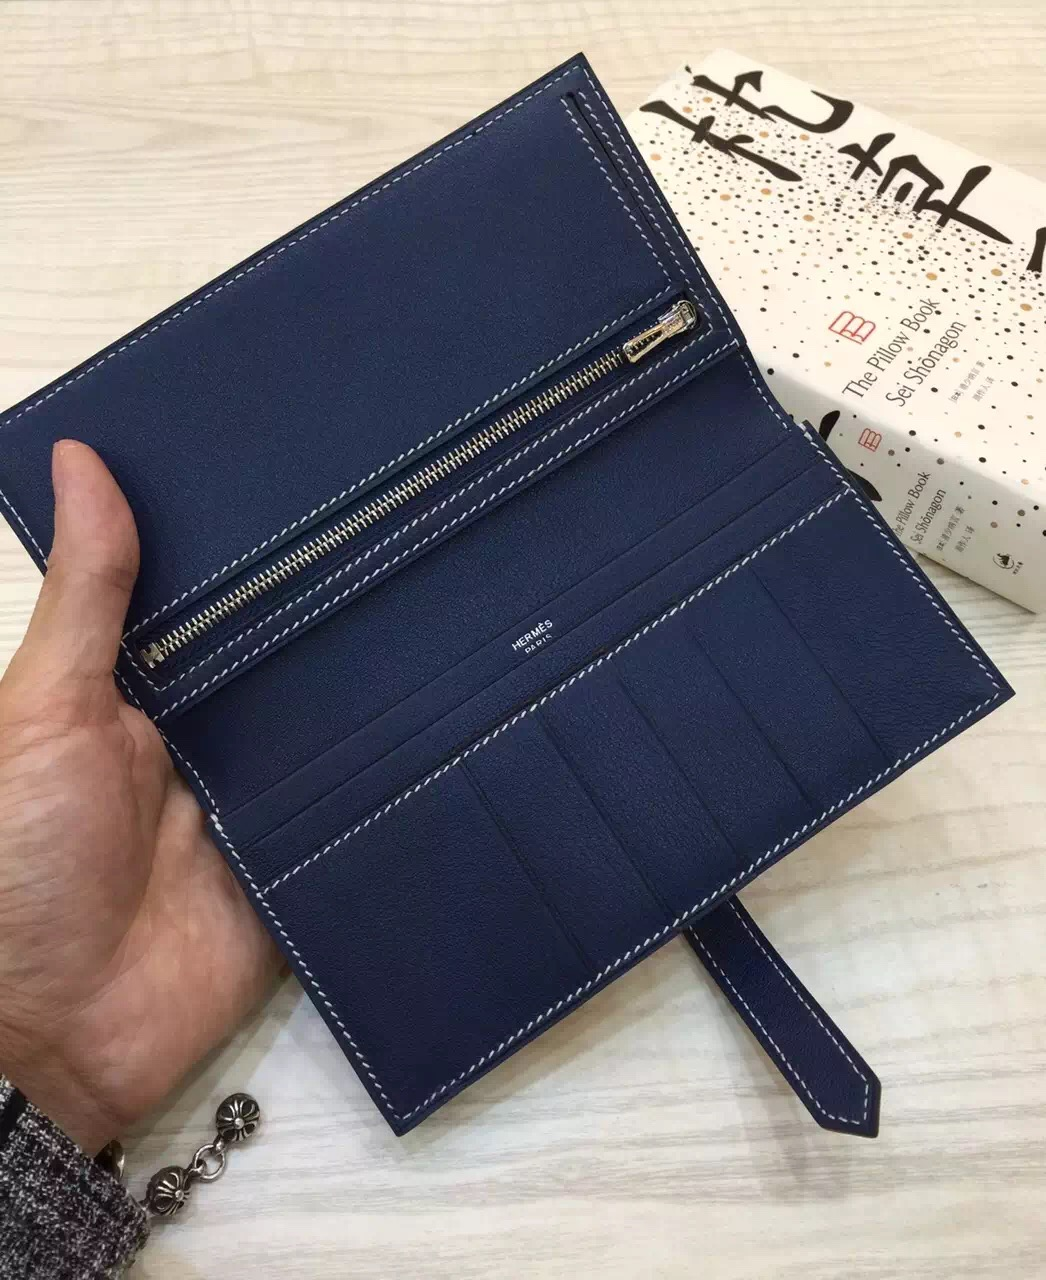 Hand Stitching Hermes 7A Royal Blue Swift Leather Bearn Wallet Long Purse